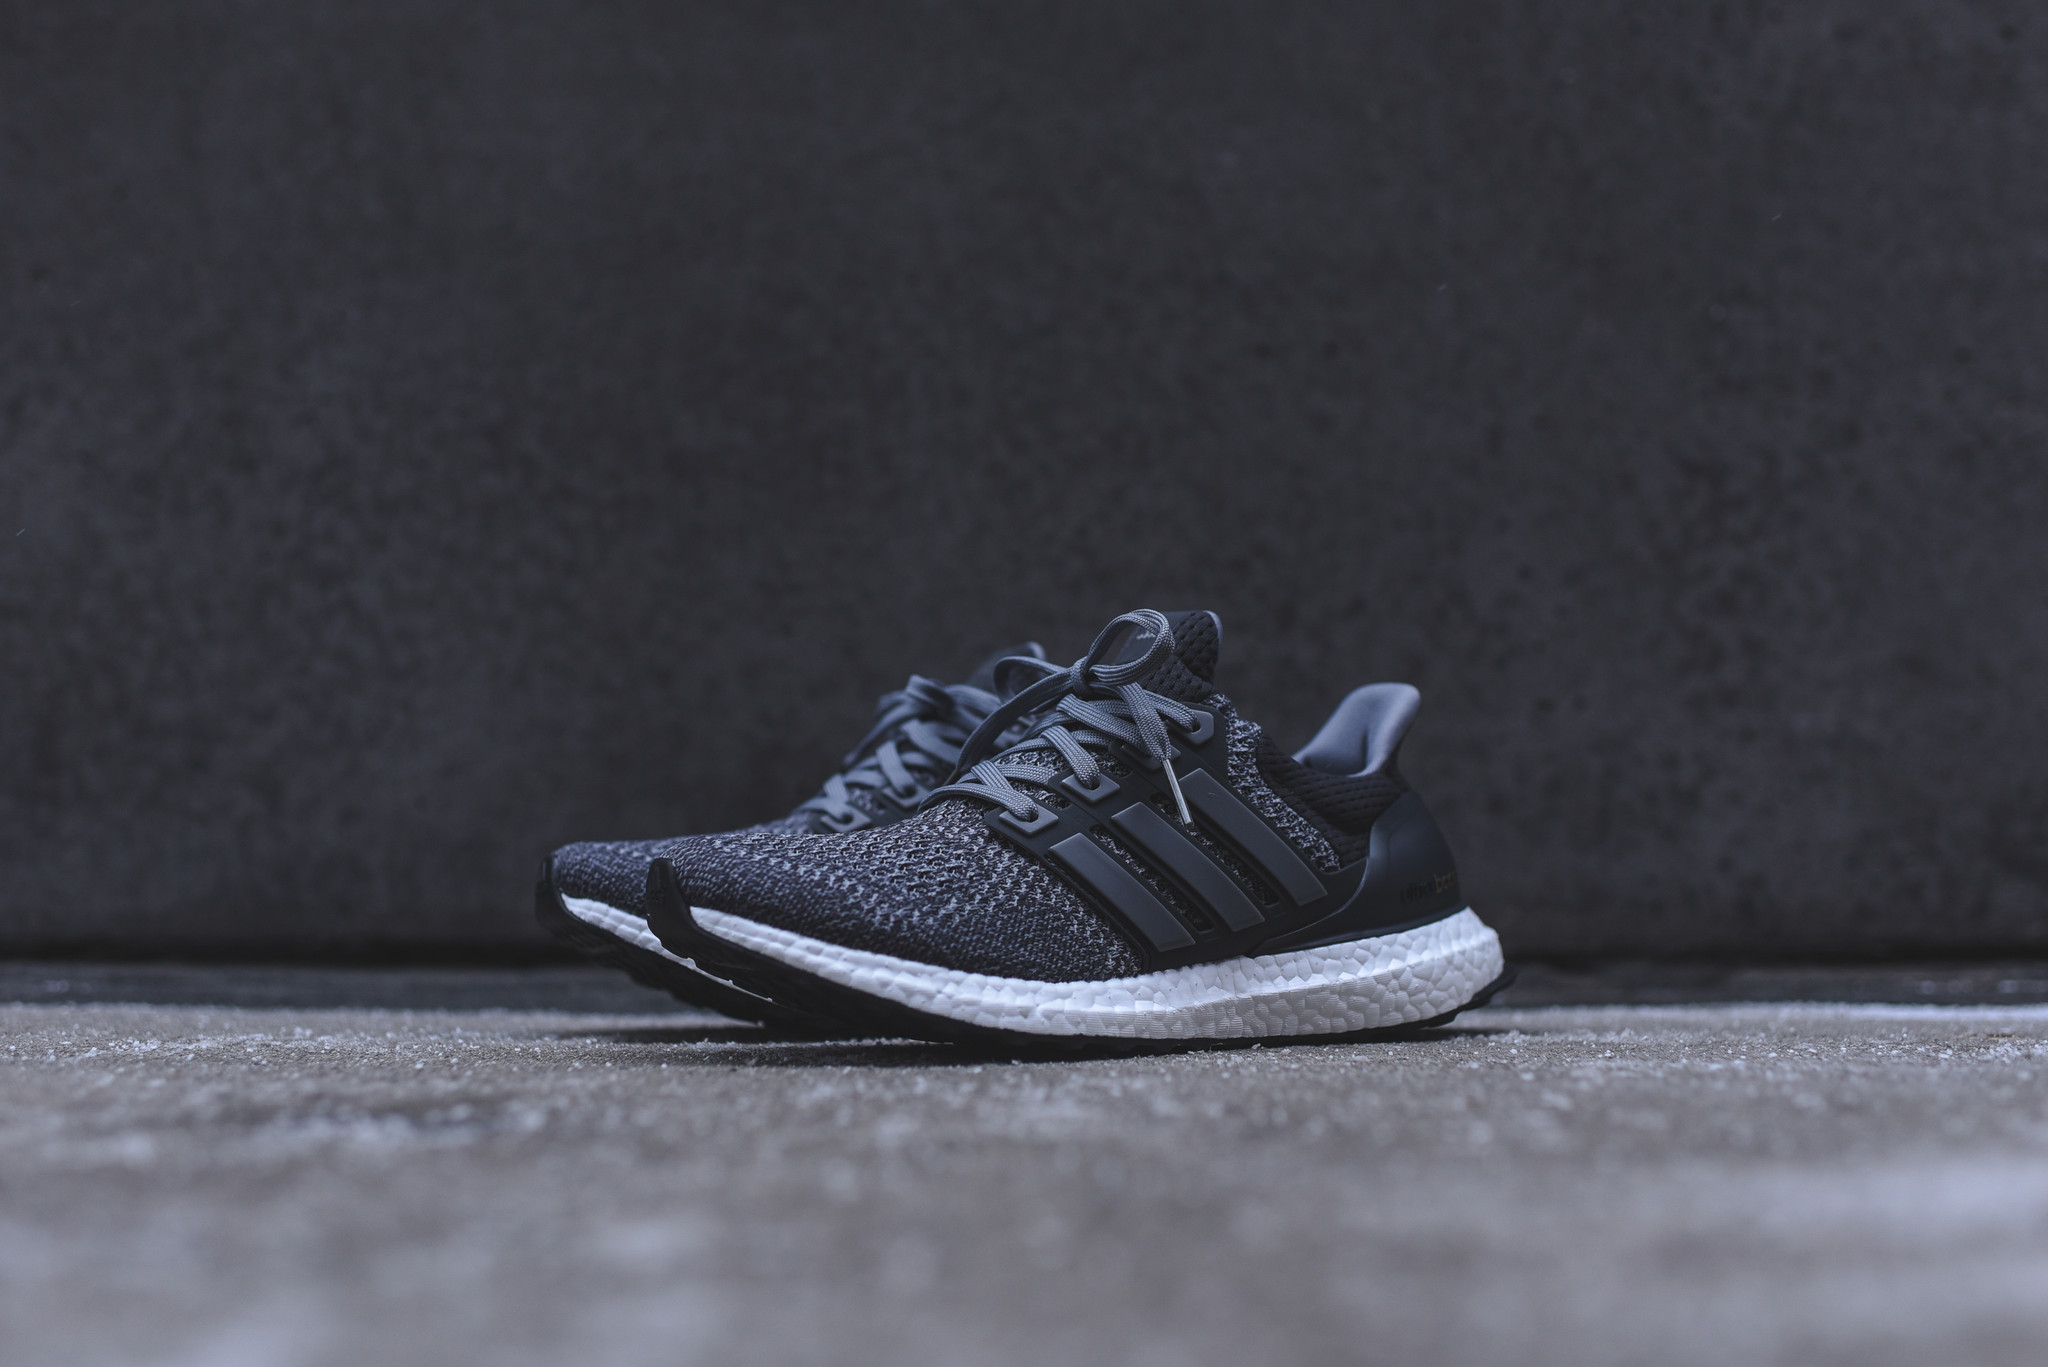 Adidas Ultra Boost 3.0 Reigning Champ Gray